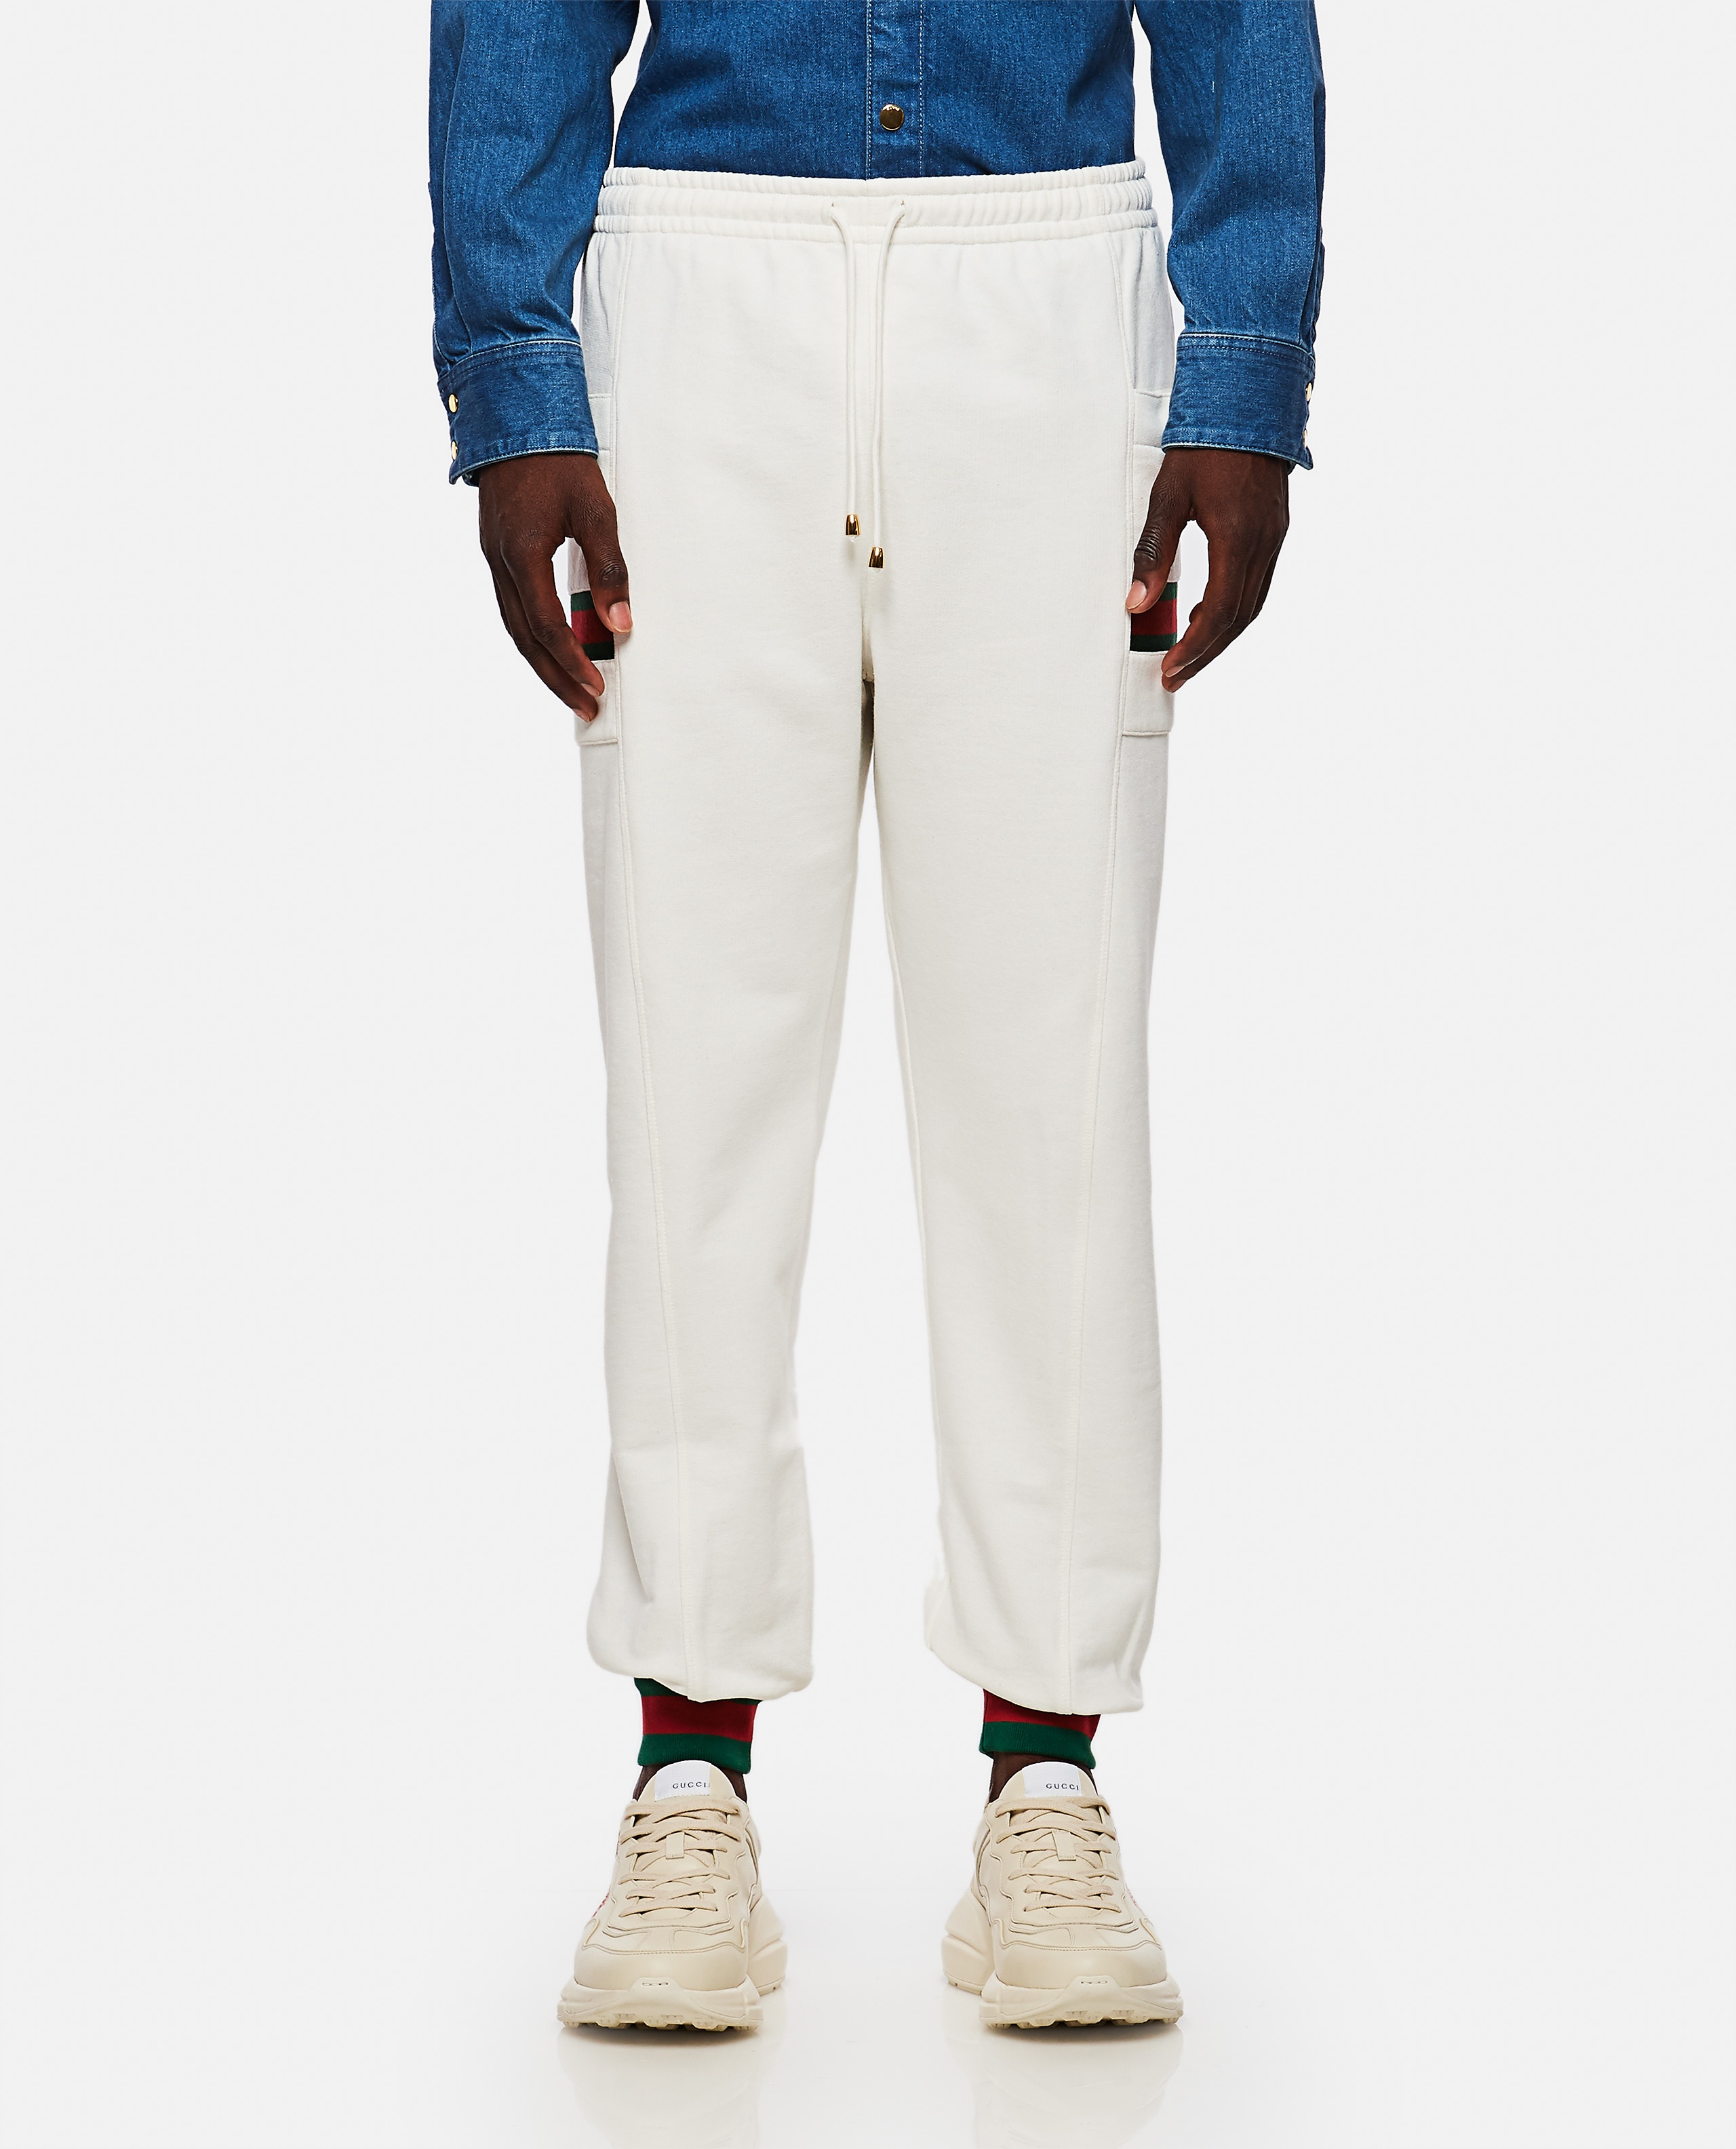 Jersey jogging trousers with Web ribbon Men Gucci 000267660039487 1